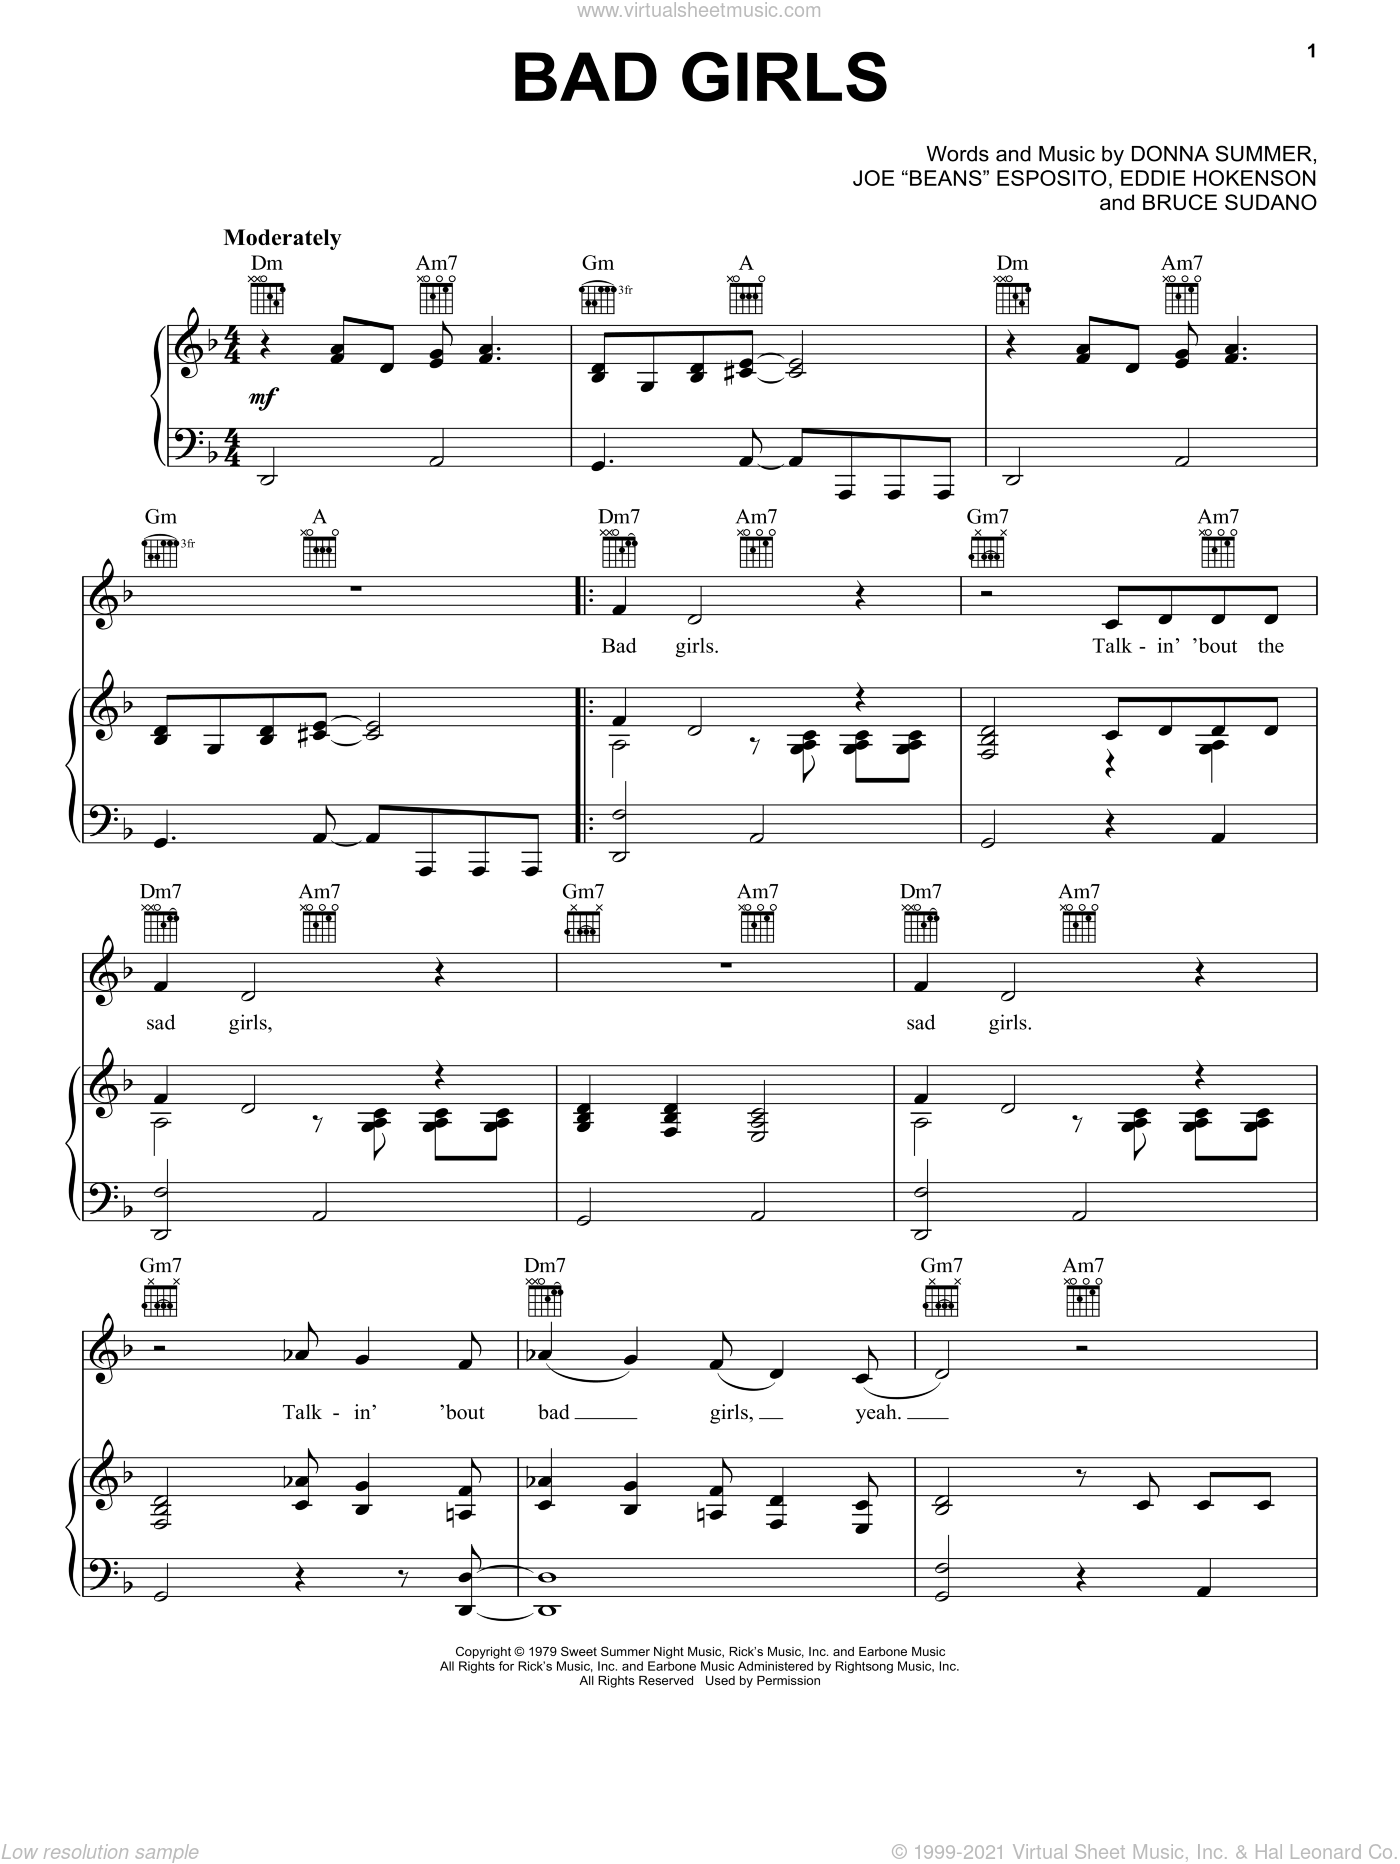 Bad Girls sheet music for voice, piano or guitar by Joe